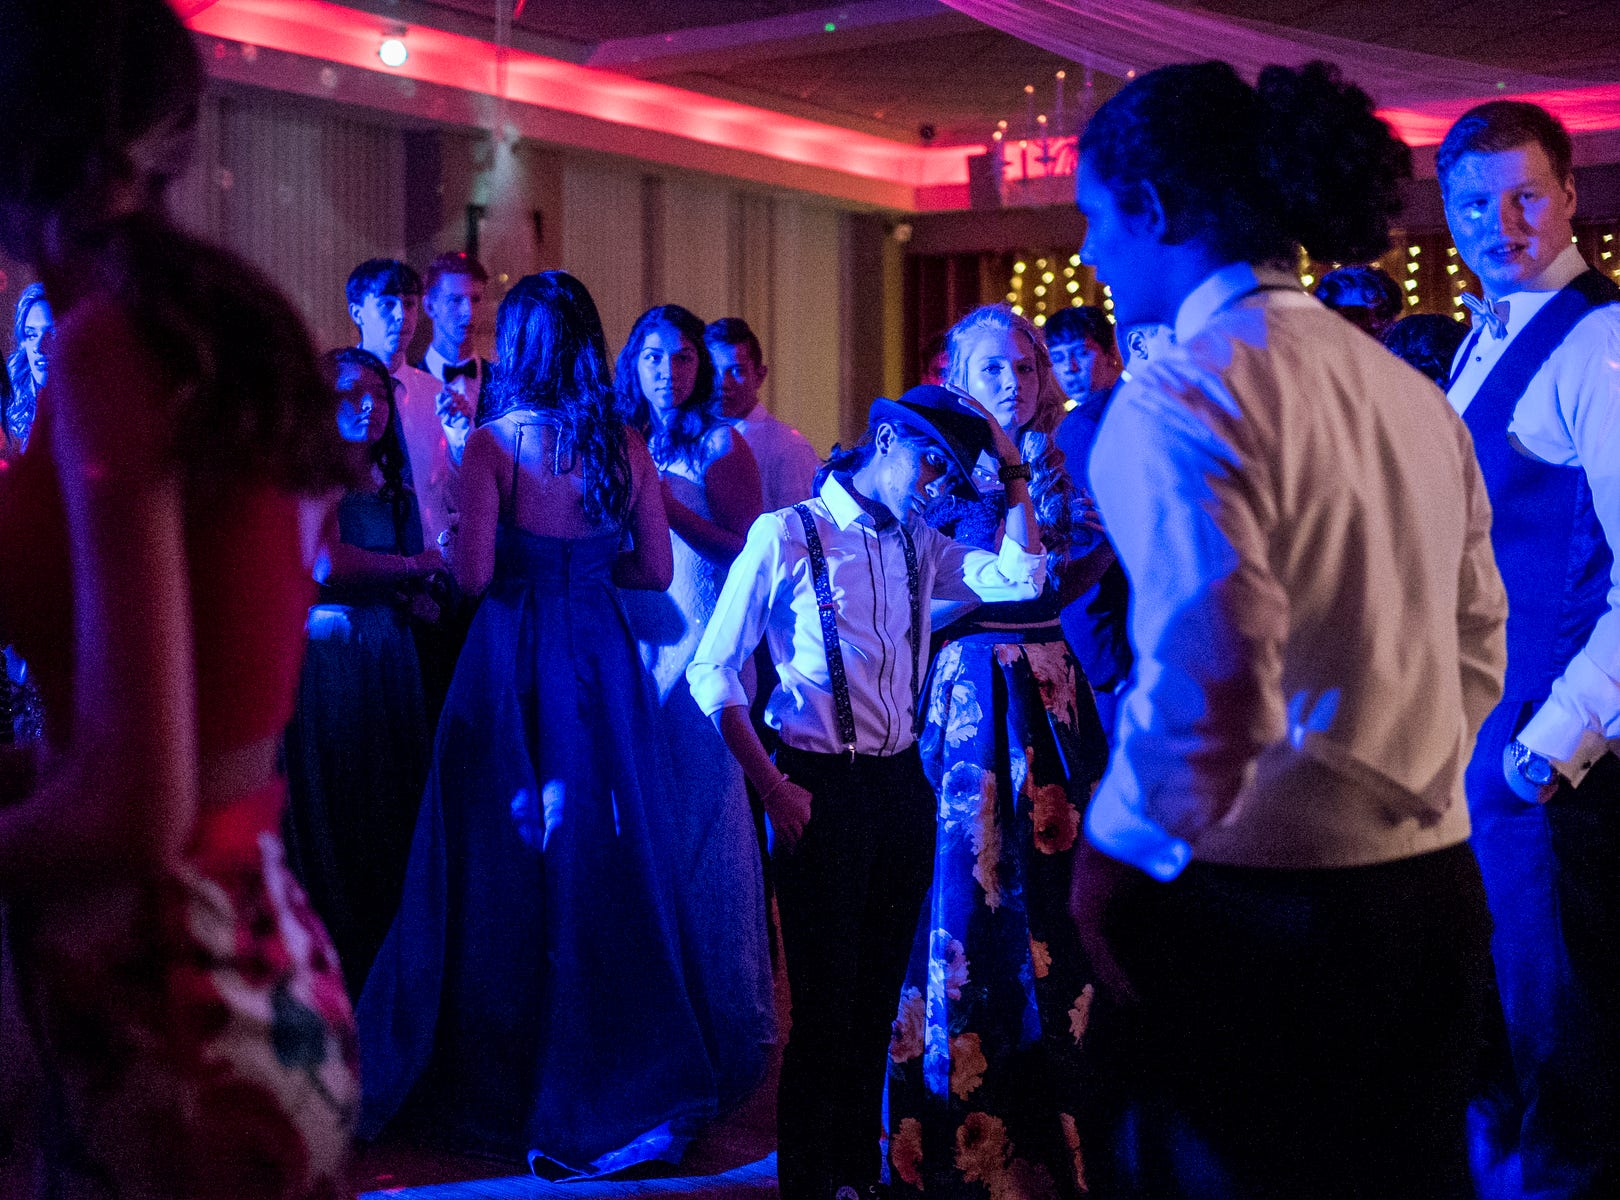 Students listen to music on the dance floor during Evansville Day School's prom held at the Hadi Shrine Banquet Hall in downtown Evansville, Ind., Saturday, April 27, 2019.